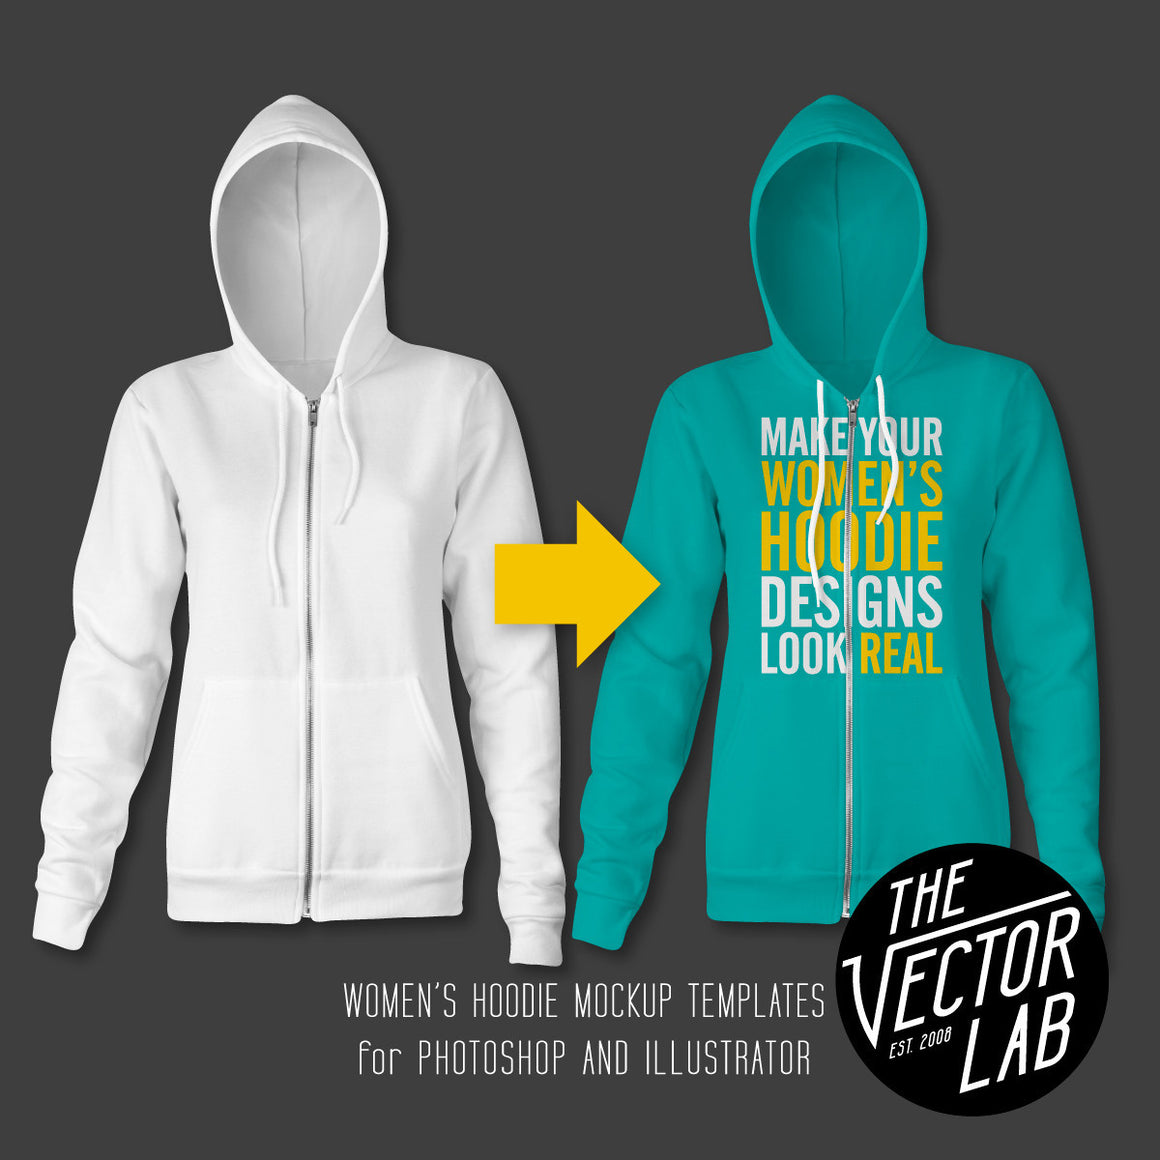 Women's Hoodie Sweatshirt Mockup Templates for Photoshop and Illustrator